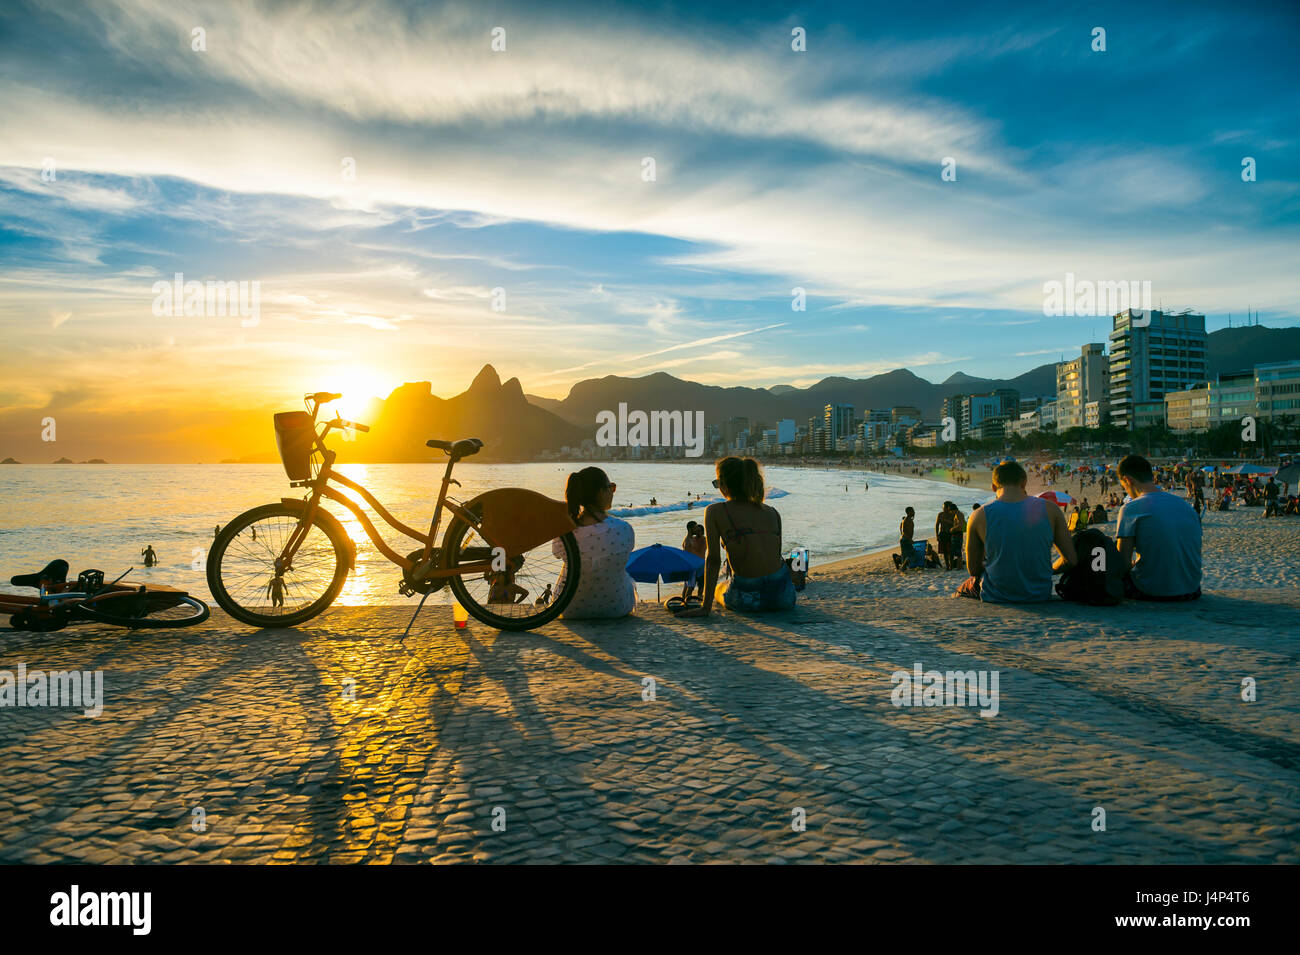 People sit watching the sunset at Arpoador, a popular summertime activity for locals and tourists, in Rio de Janeiro, - Stock Image